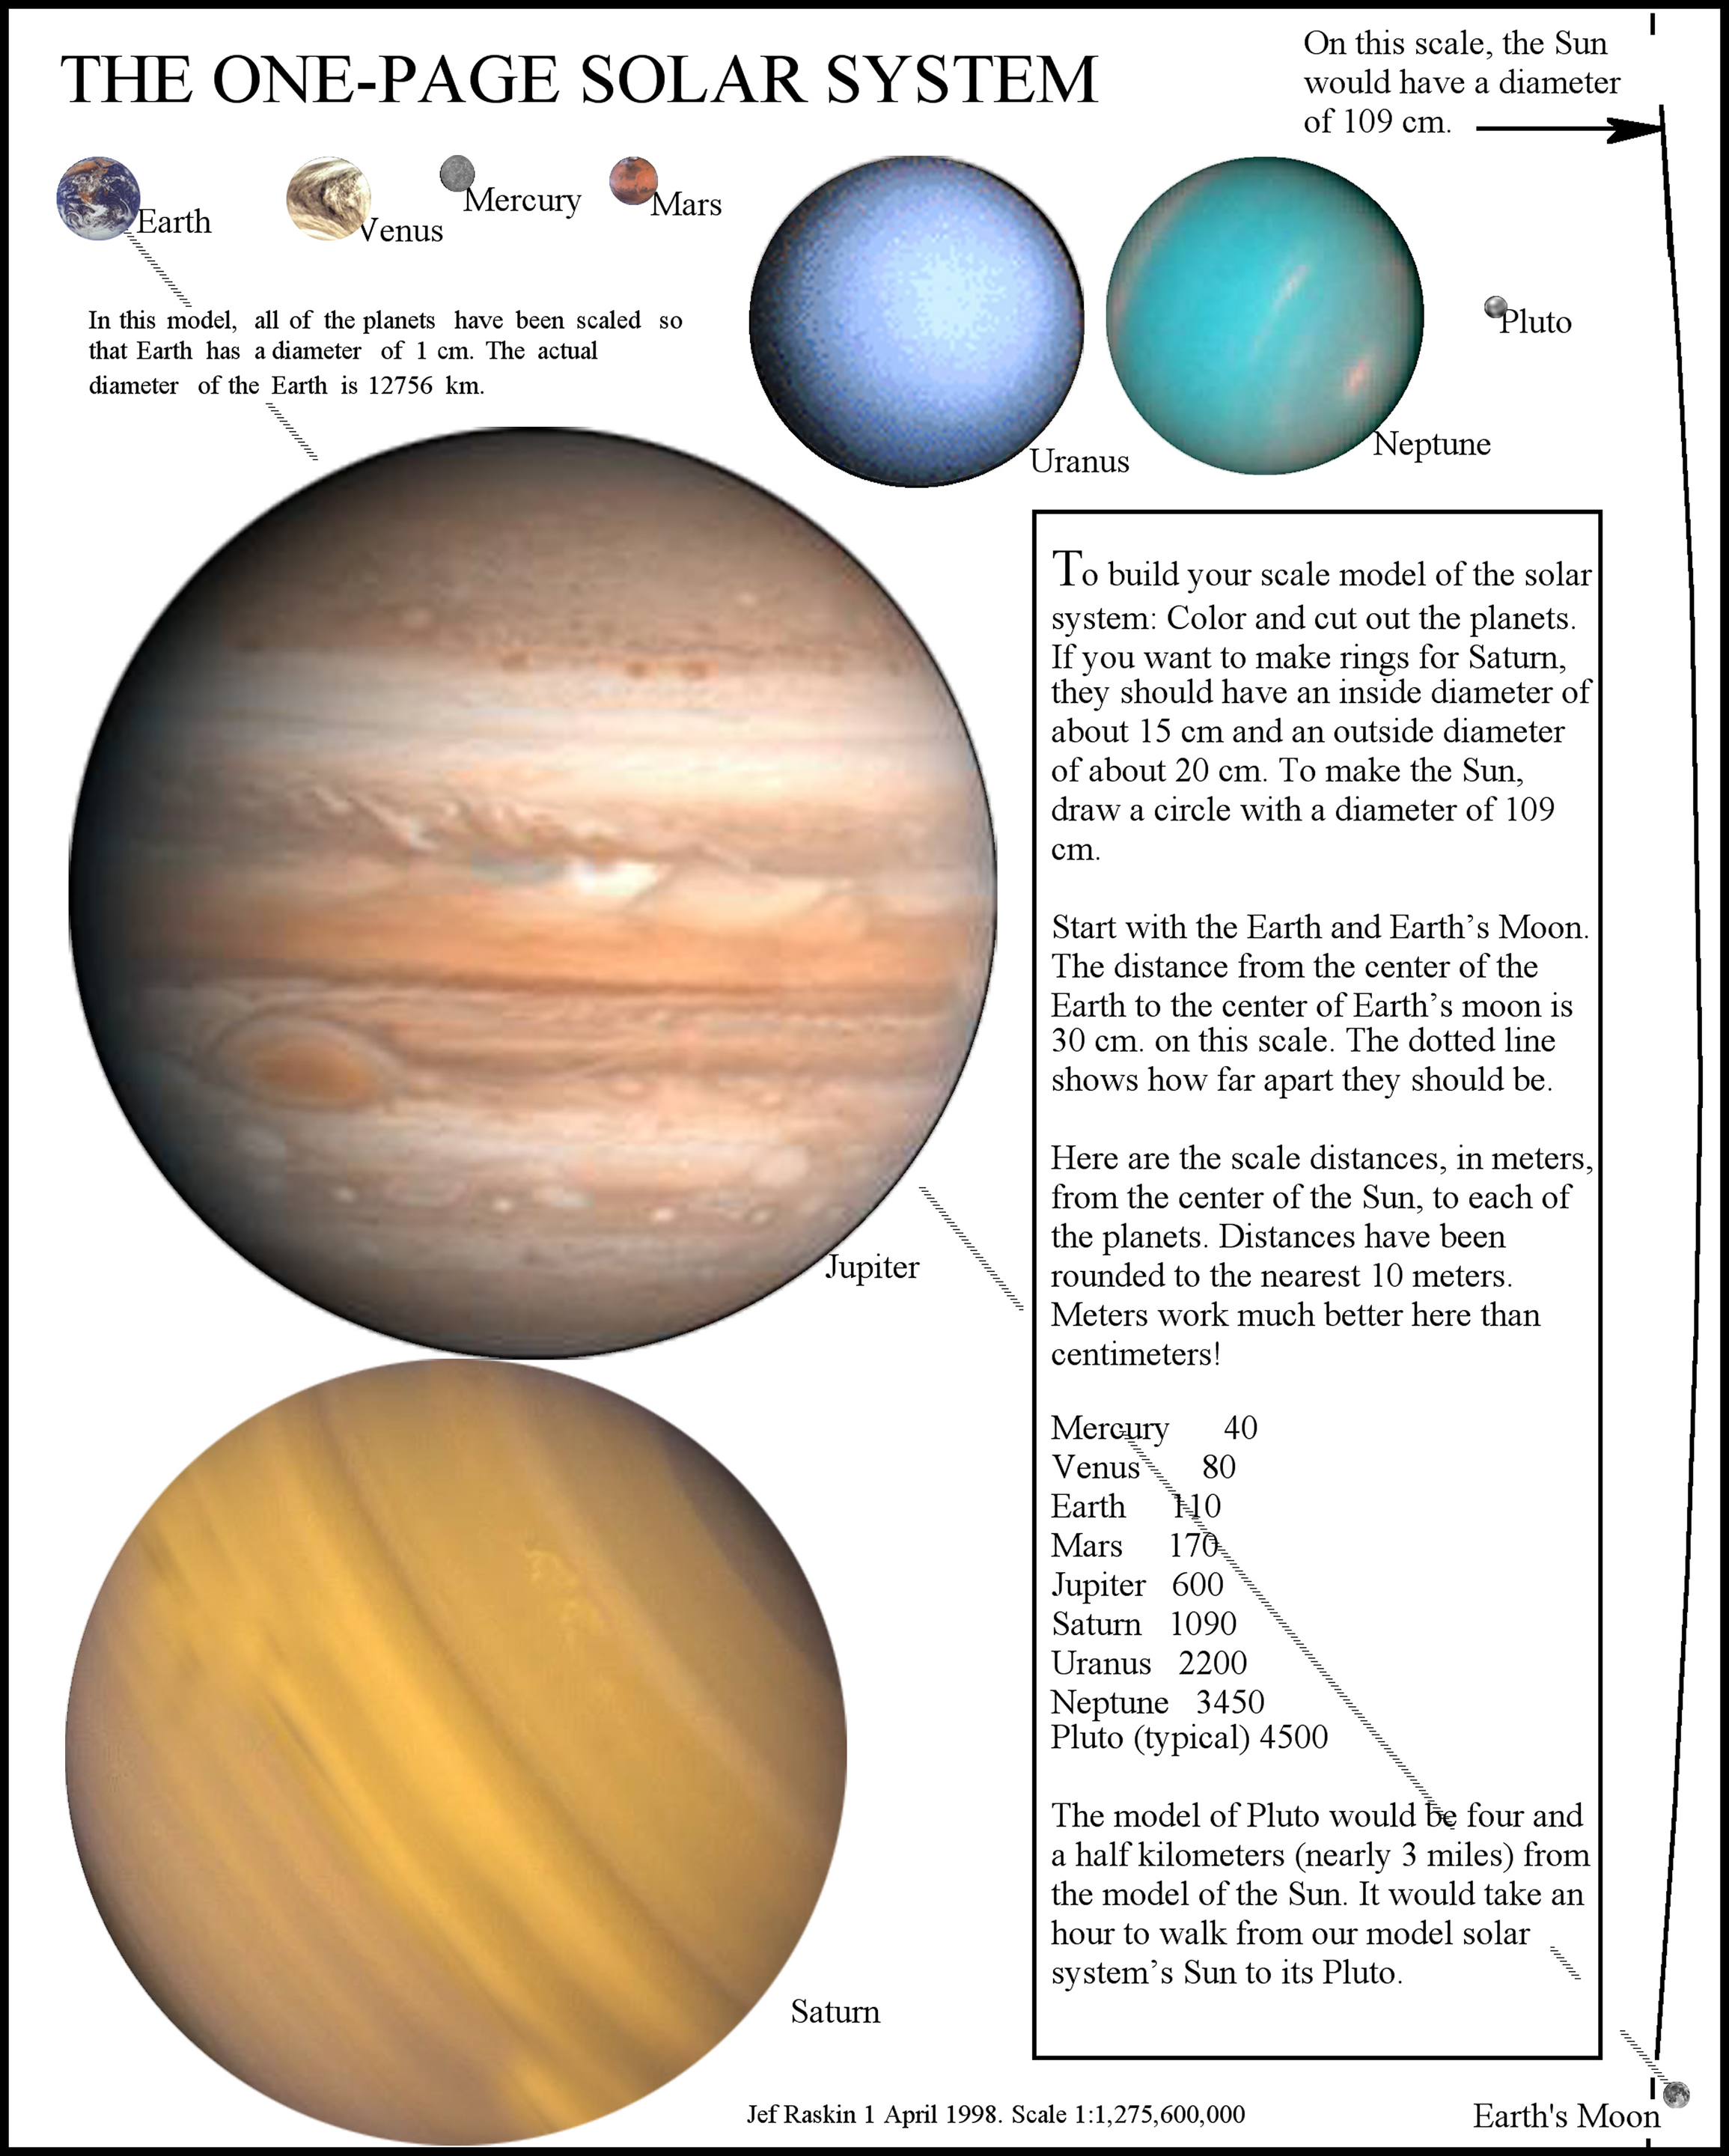 The Solar System Explained In One Page